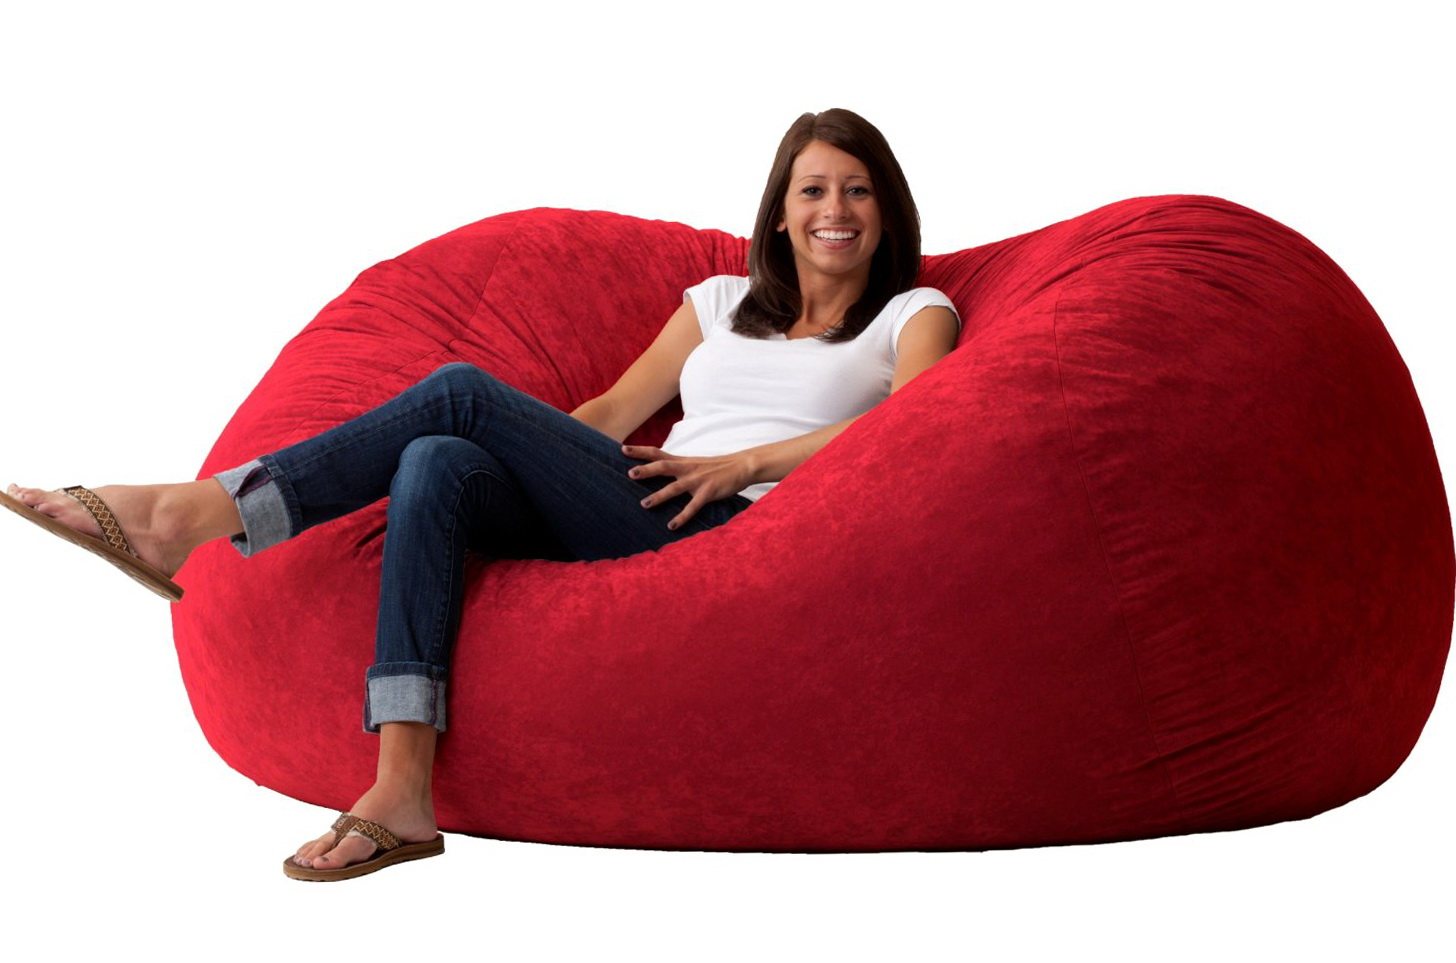 Large Floor Cushions For Kids